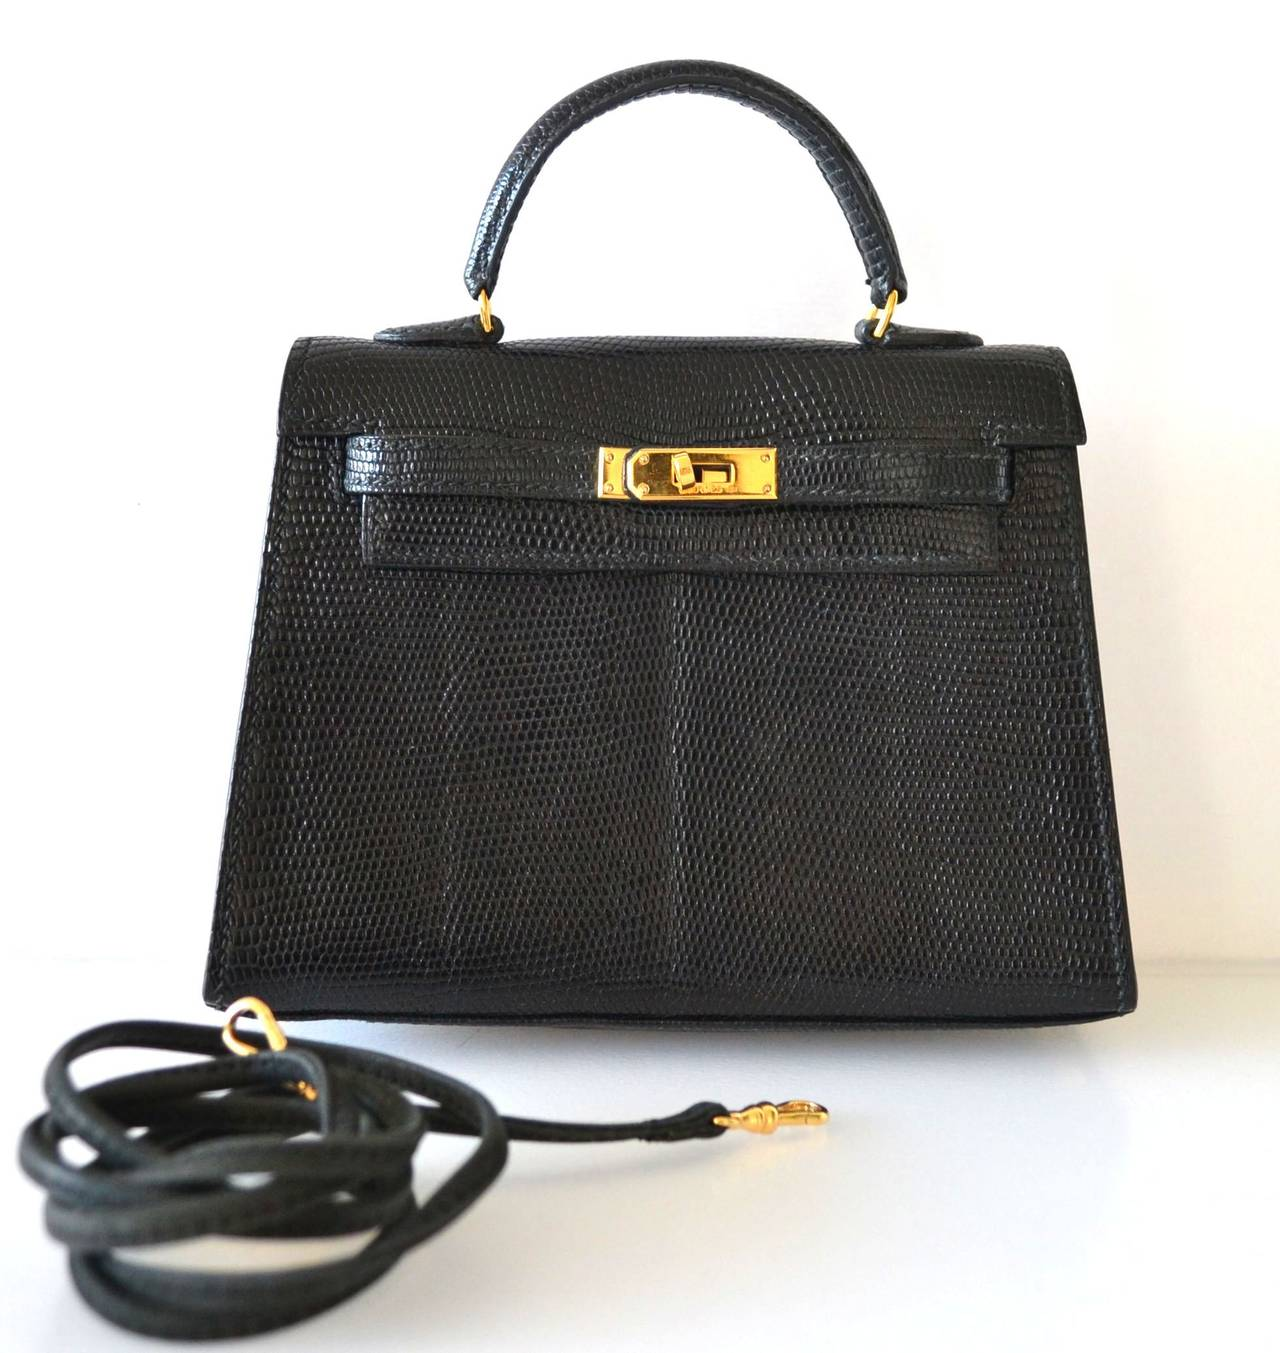 best fake birkin bag - Exceptional Hermes Kelly 15 Lizard Black at 1stdibs